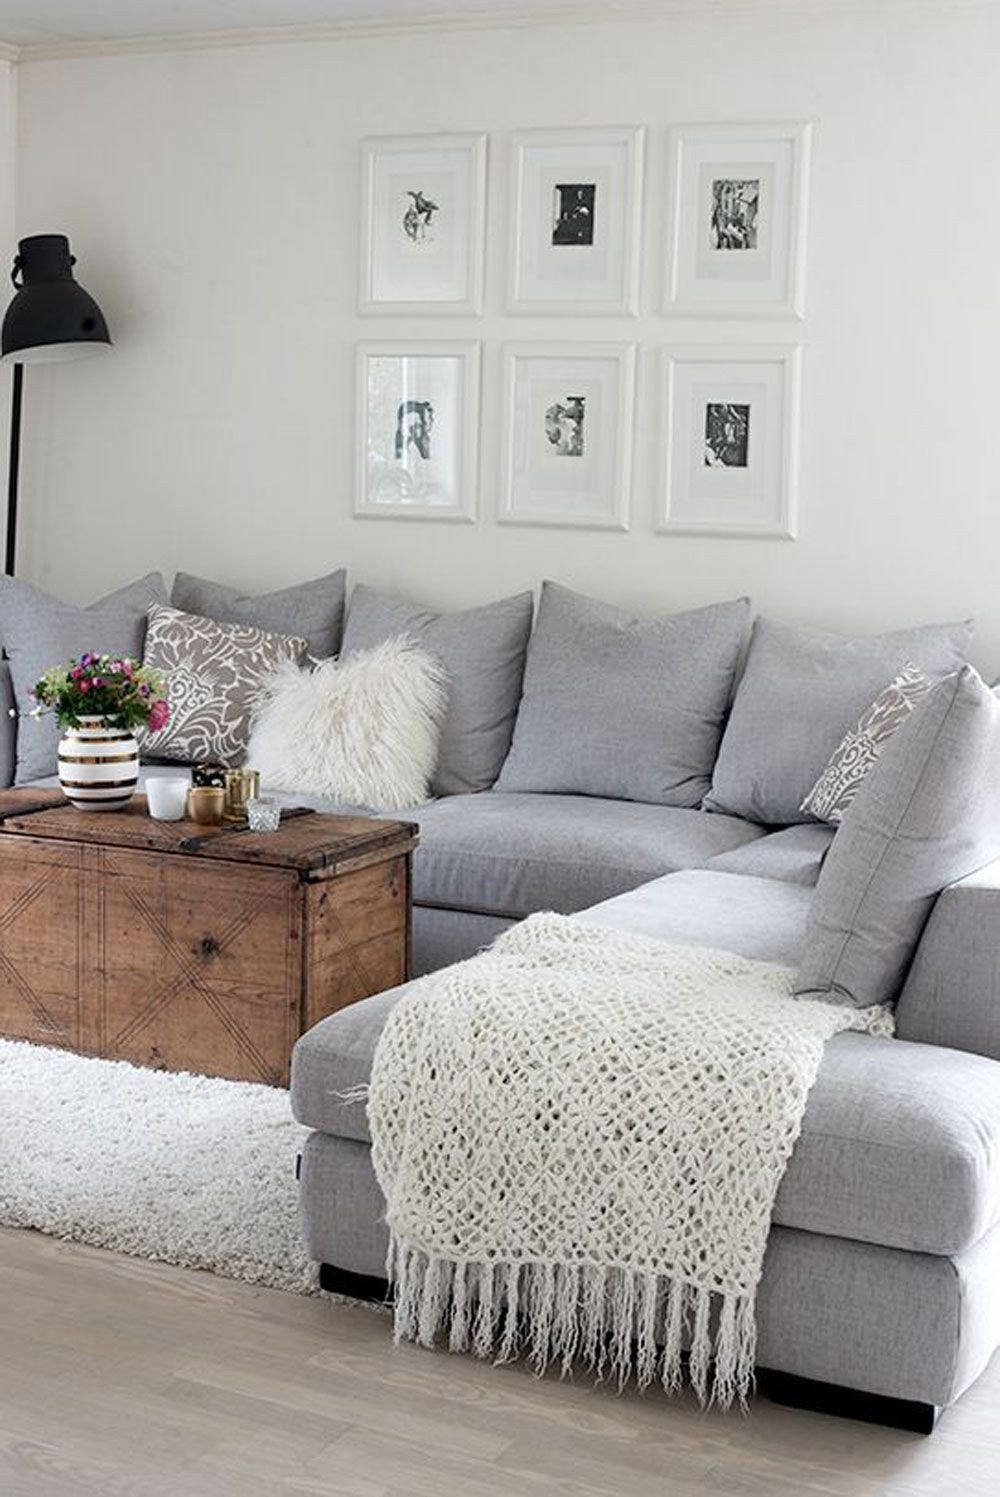 Grey Couch Living Room Decor Fresh This Makes It Cozy and It Might Only Be A Throw or A